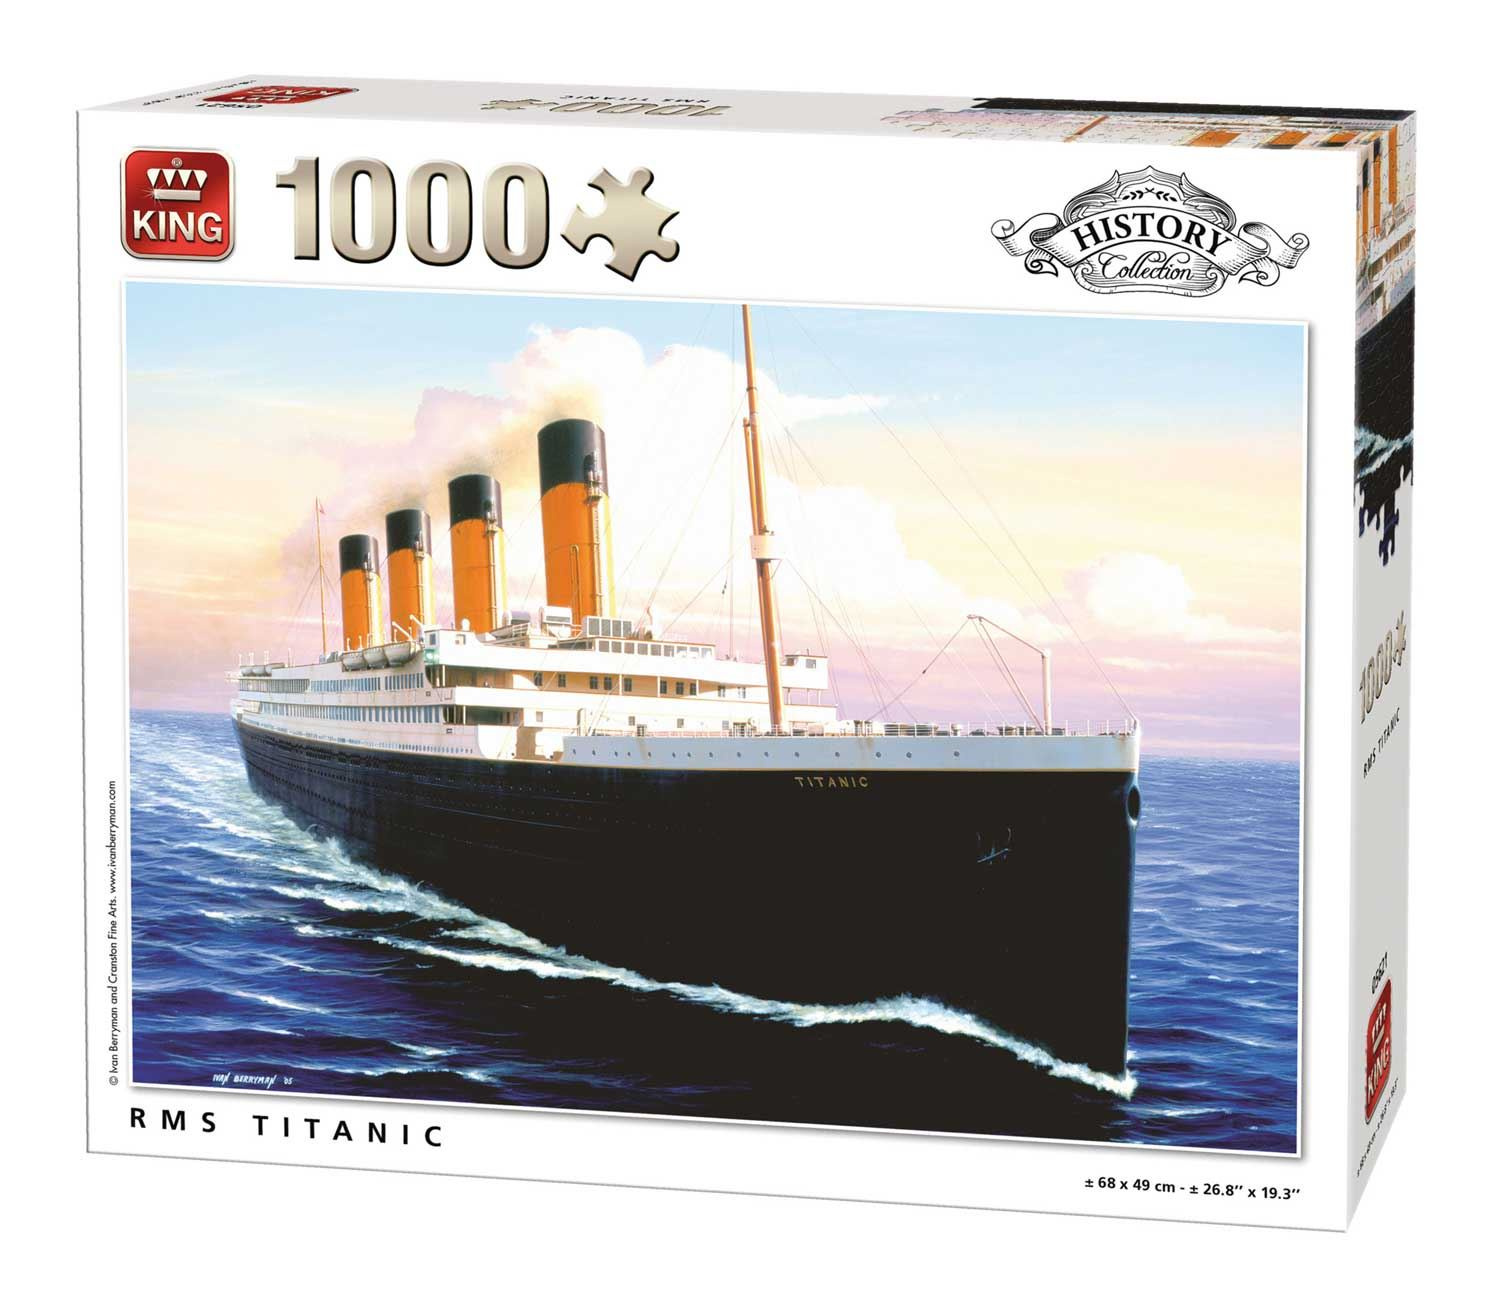 King RMS Titanic Jigsaw Puzzle (1000 Pieces)